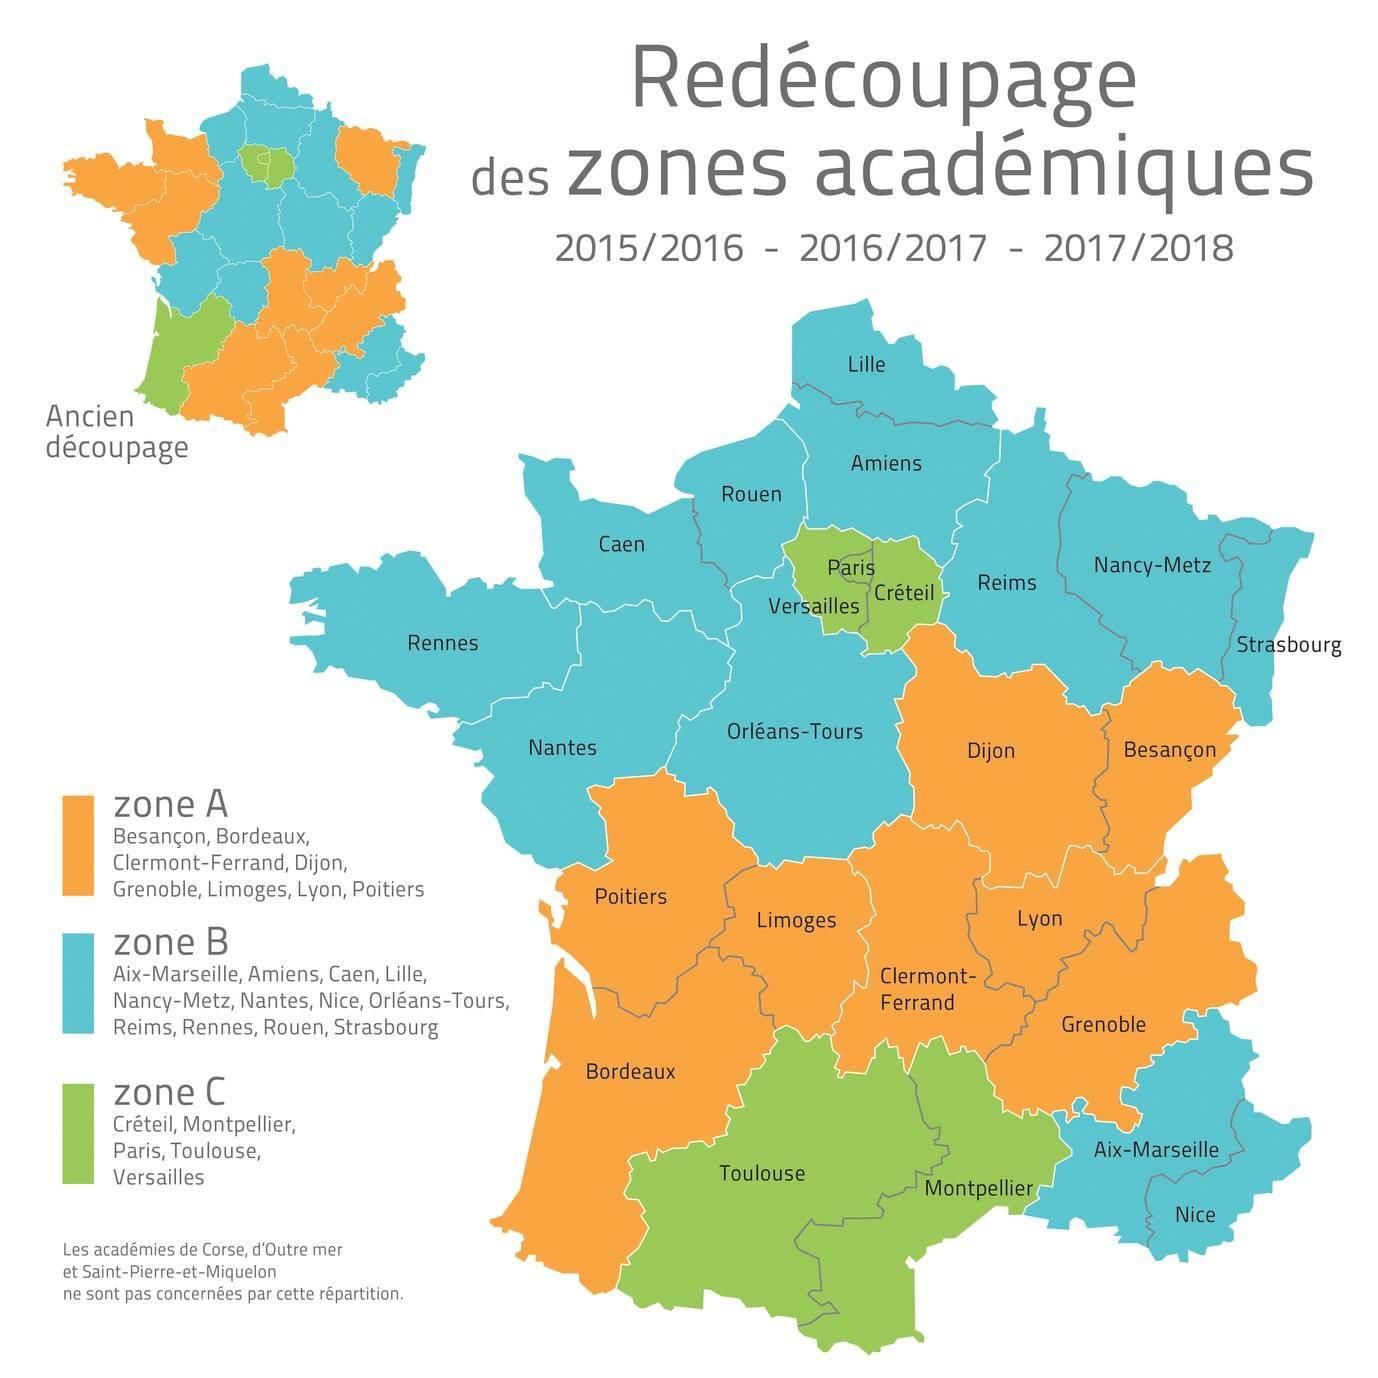 vacances scolaires france 2015 lorraine. Black Bedroom Furniture Sets. Home Design Ideas